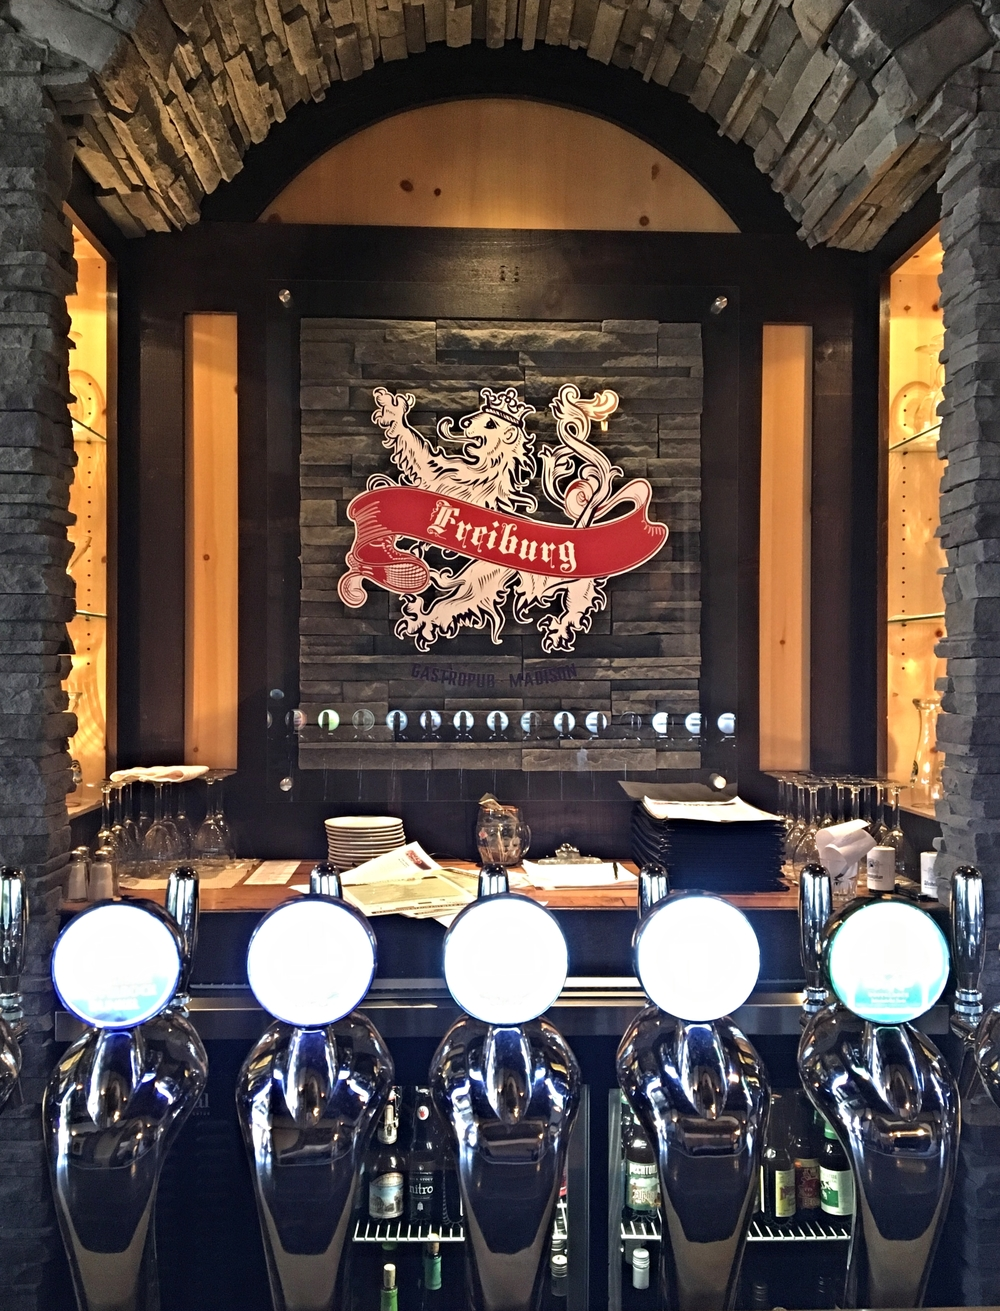 Fine masonry surrounding the Freiburg logo illuminated by custom beer taps from Italy.                       Photo by Epicurean Chronicles